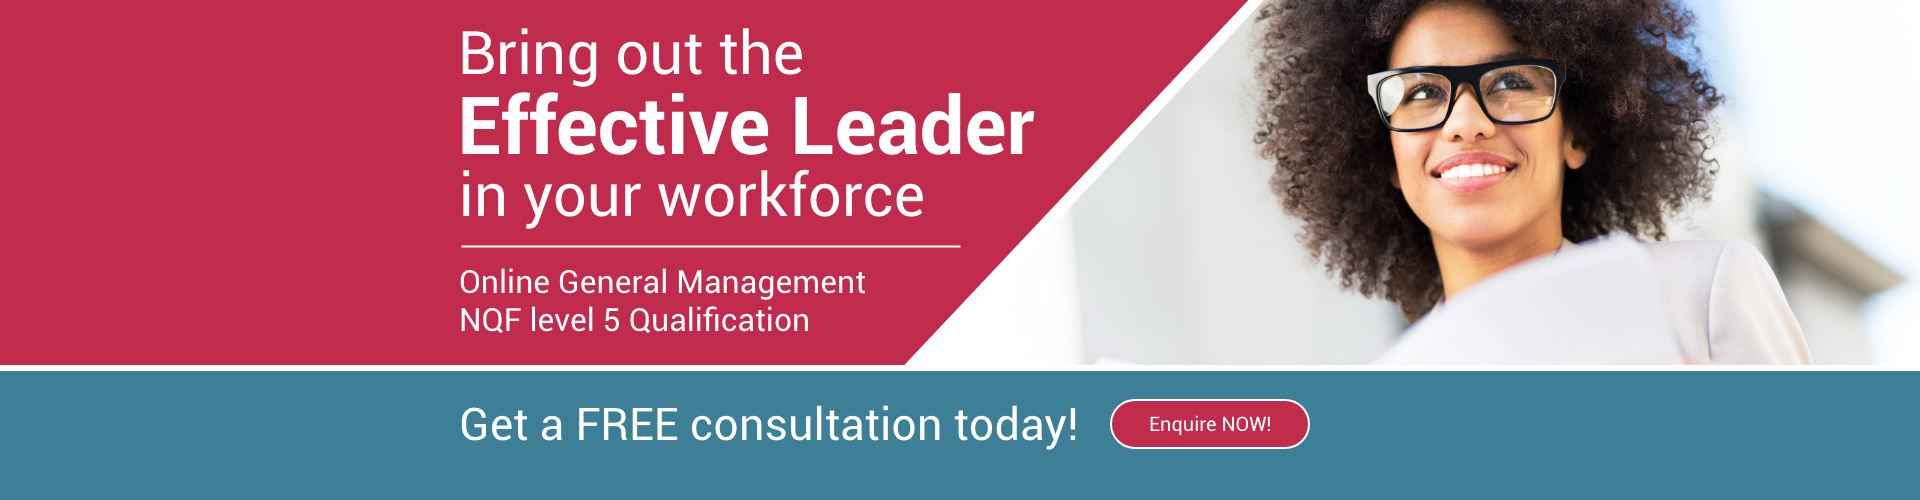 Bring out the Effective Leader in your workforce